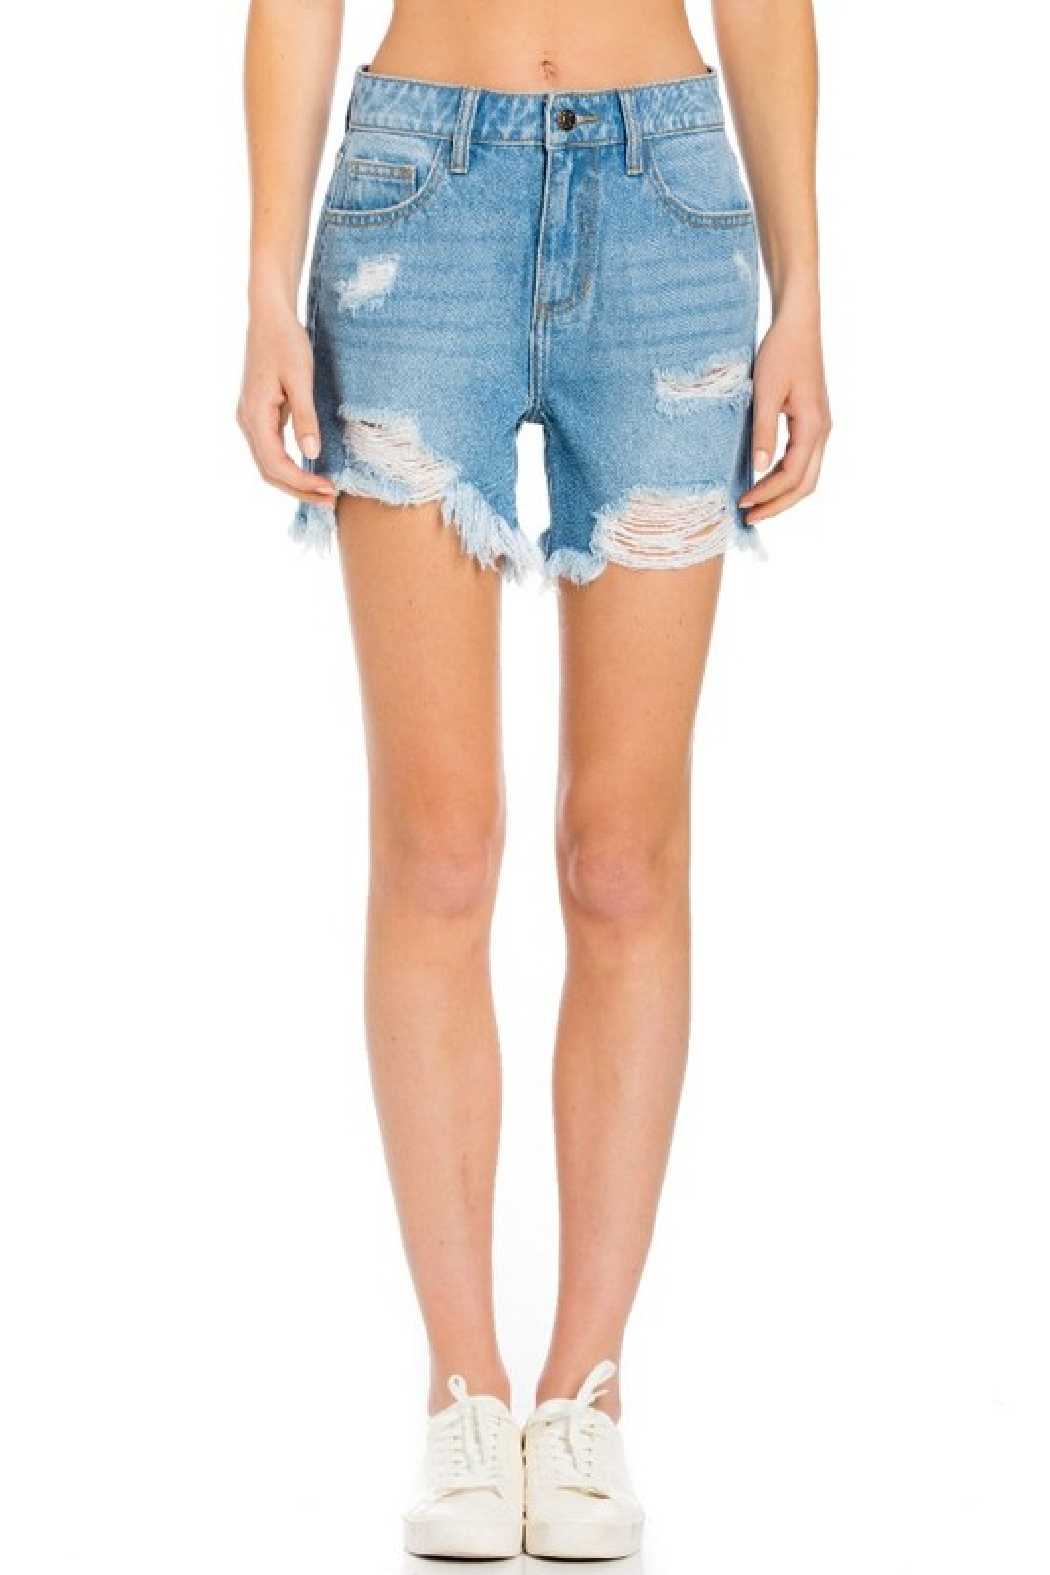 Cello Jeans High Rise Destroyed Shorts - Front Full Image